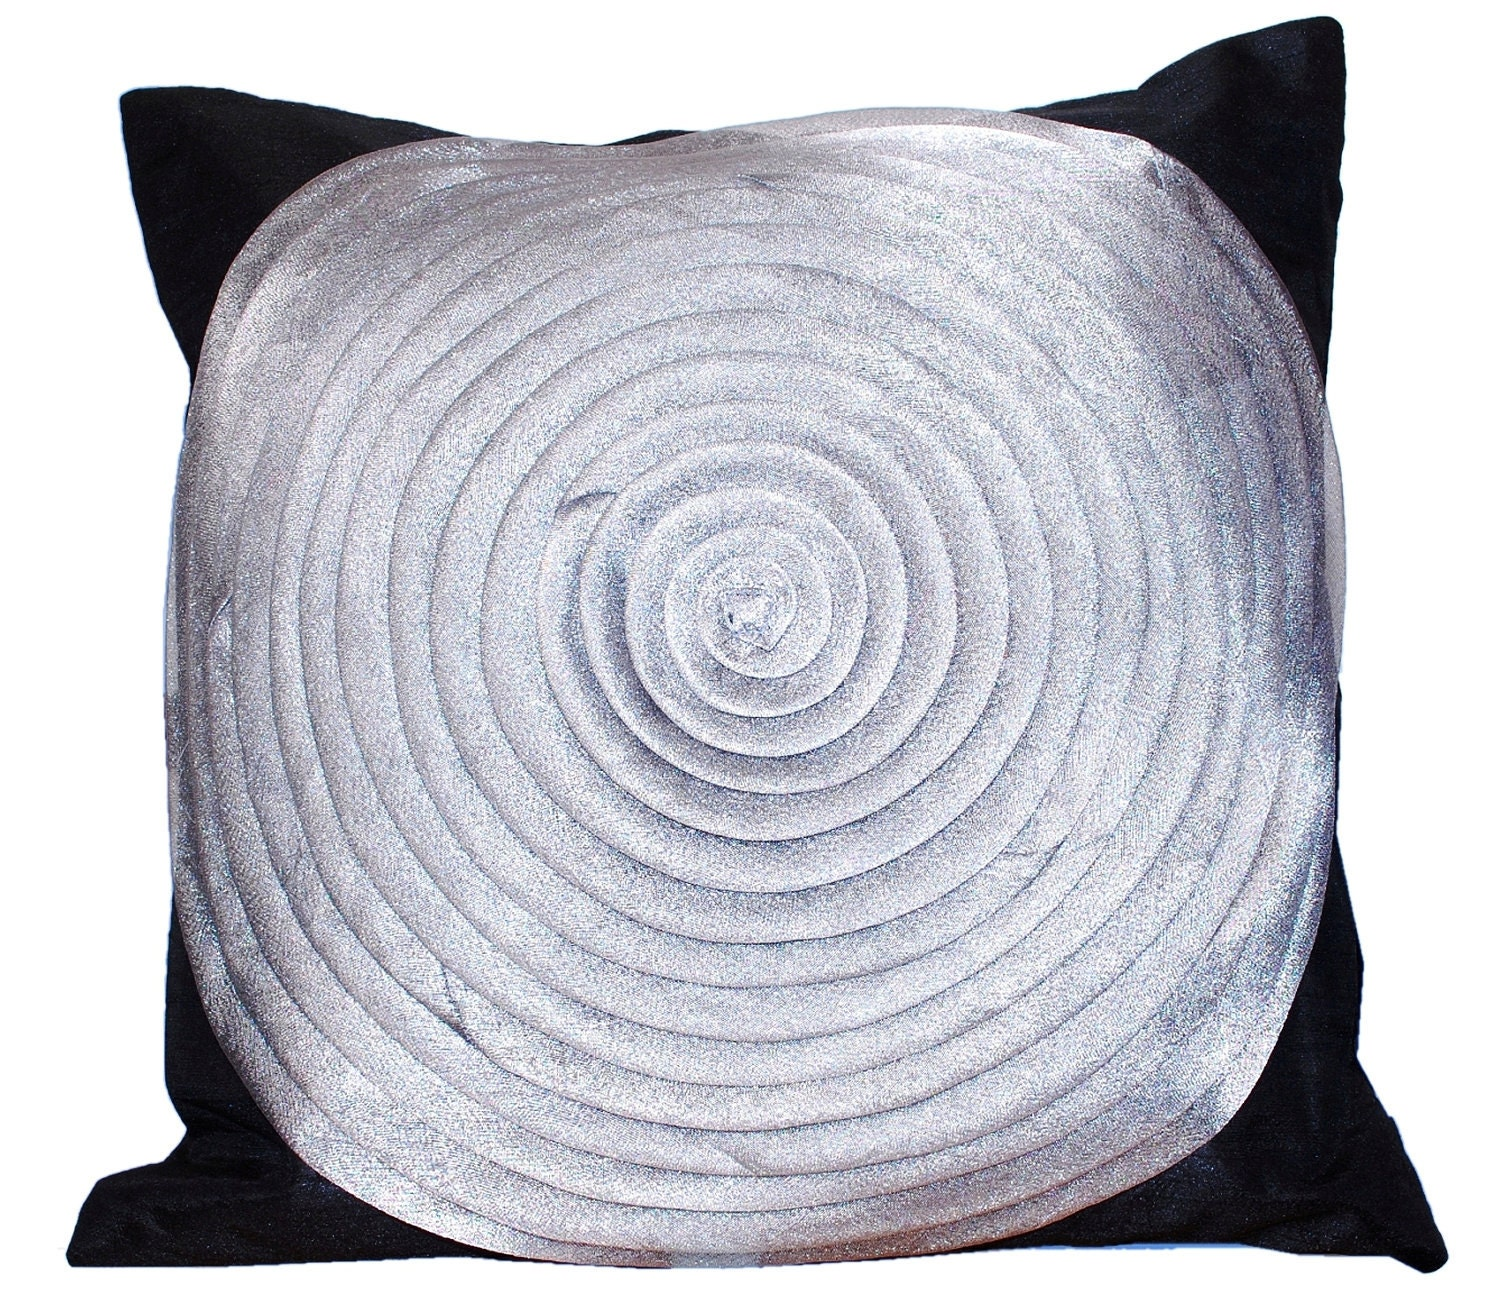 Ruffle Throw Pillow Black Silver Grey Pillow Organza Throw